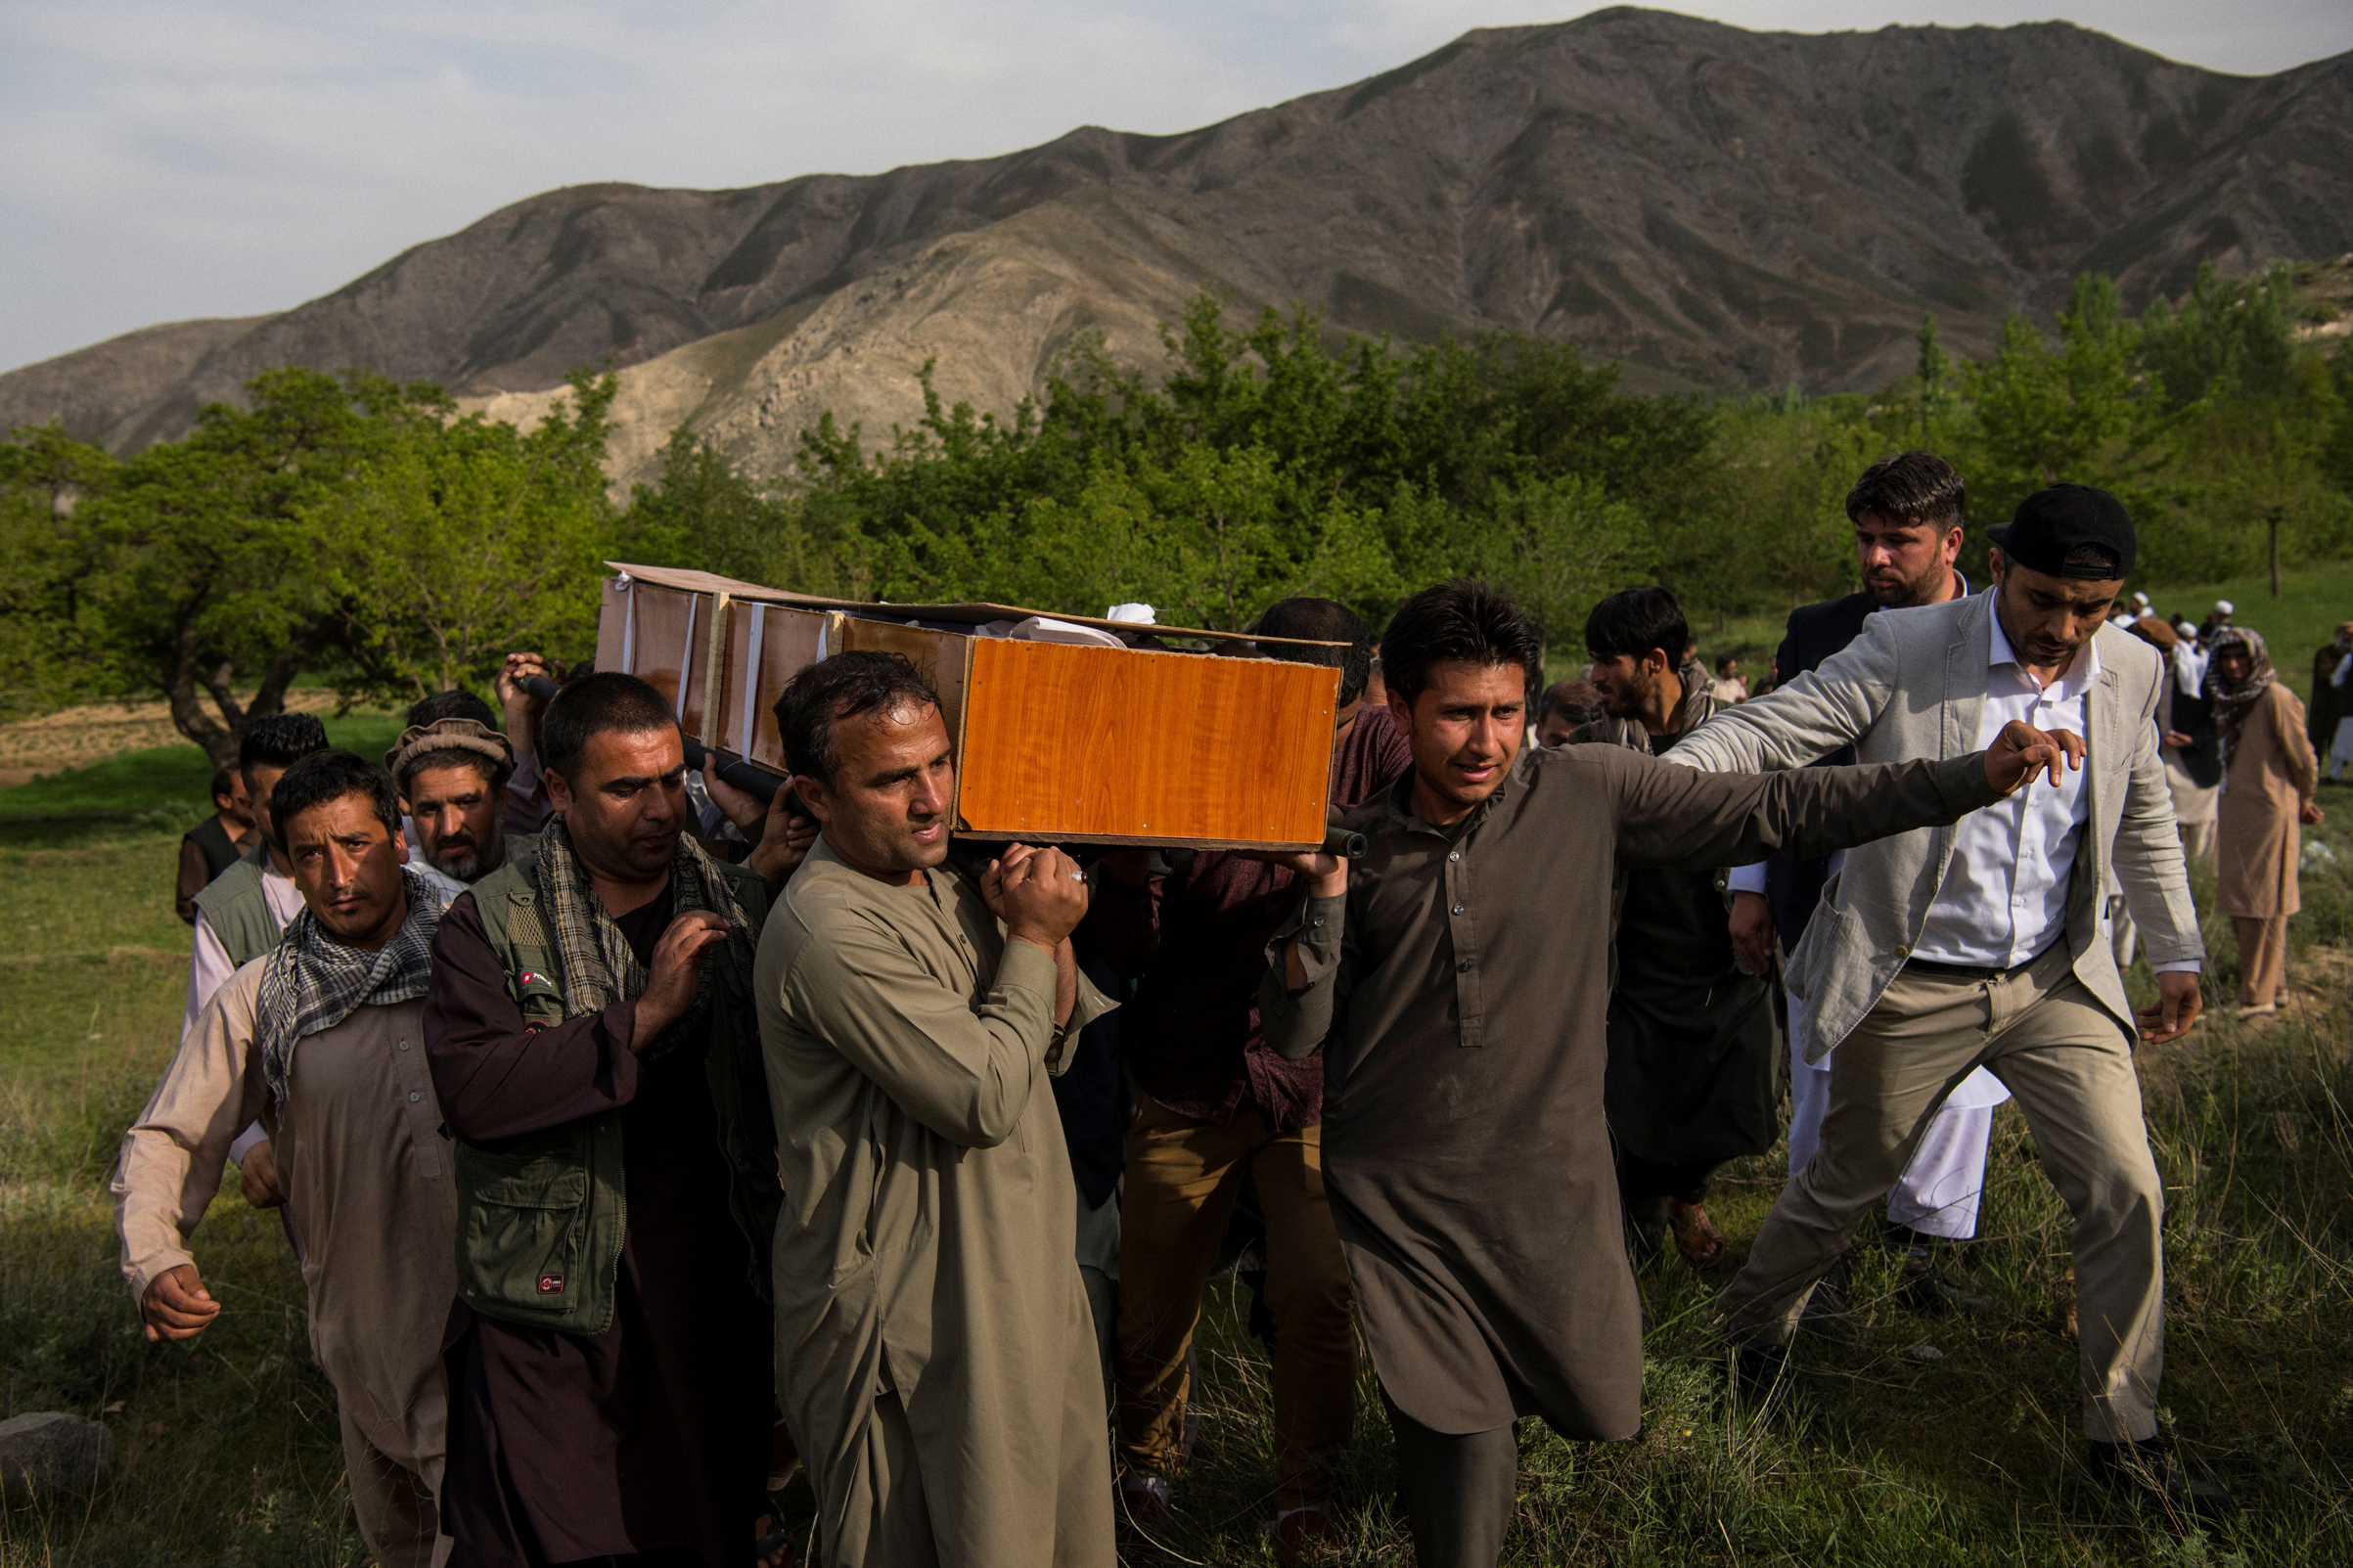 Relatives and friends of Agence France Presse Afghanistan Chief Photographer Shah Marai Faizi carry Marai's coffin before his burial in Gul Dara, Kabul, Afghanistan, on April 30, 2018.